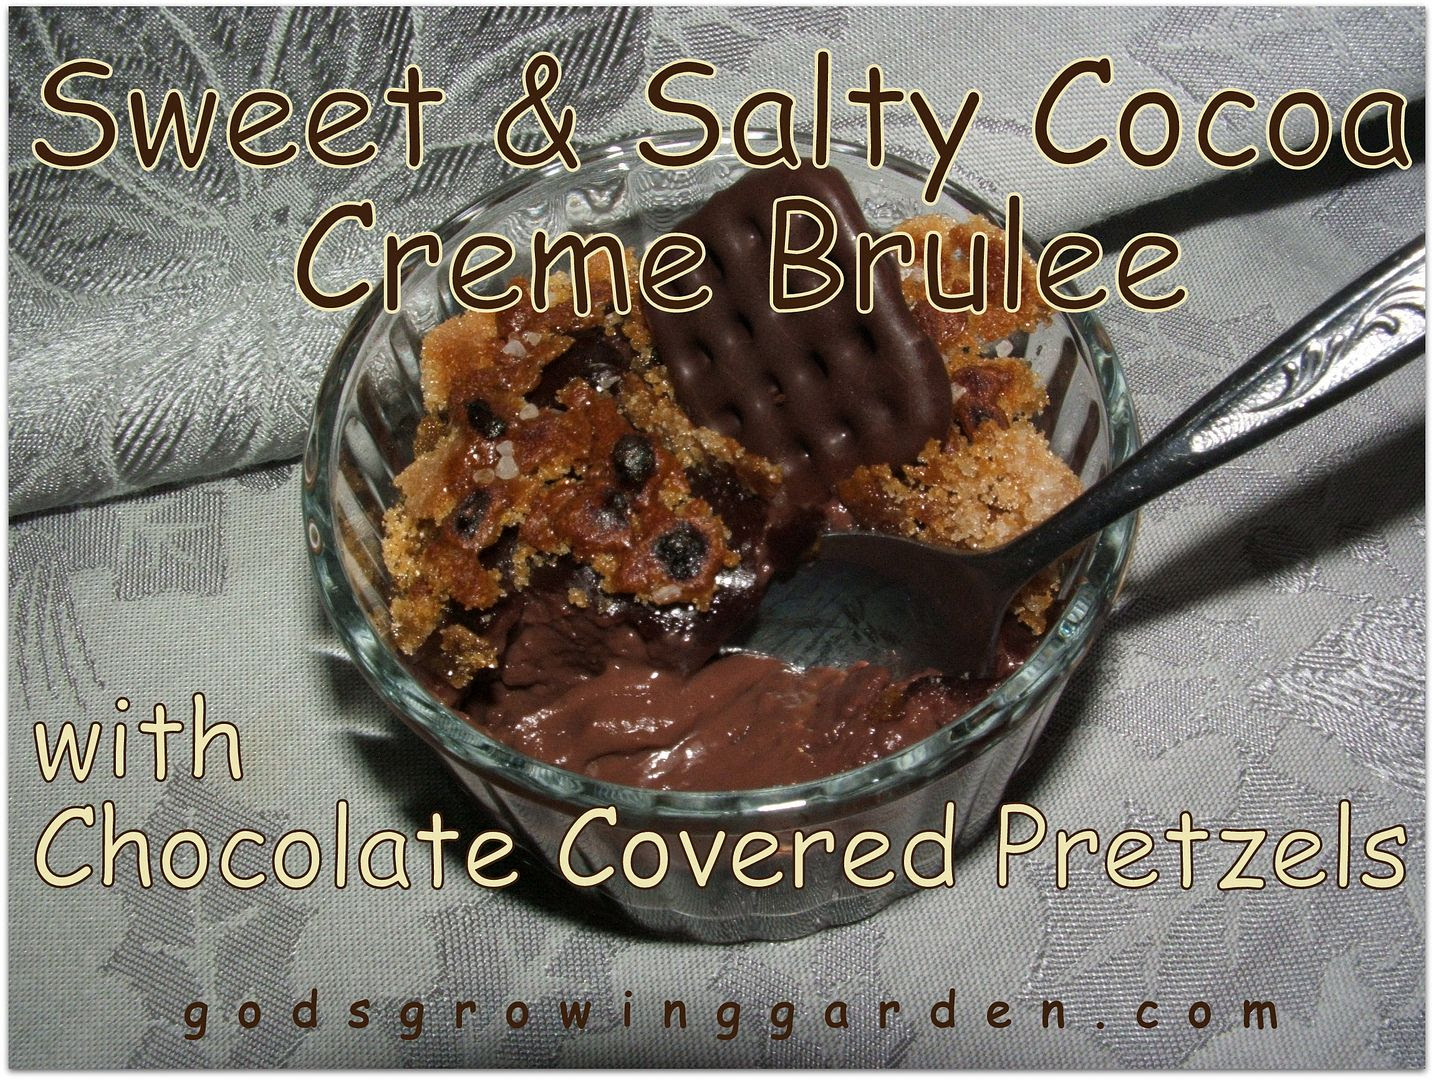 Sweet & Salty Cocoa Creme Brulee by Angie Ouellette-Tower for godsgrowinggarden.com photo 014_zps446112bd.jpg